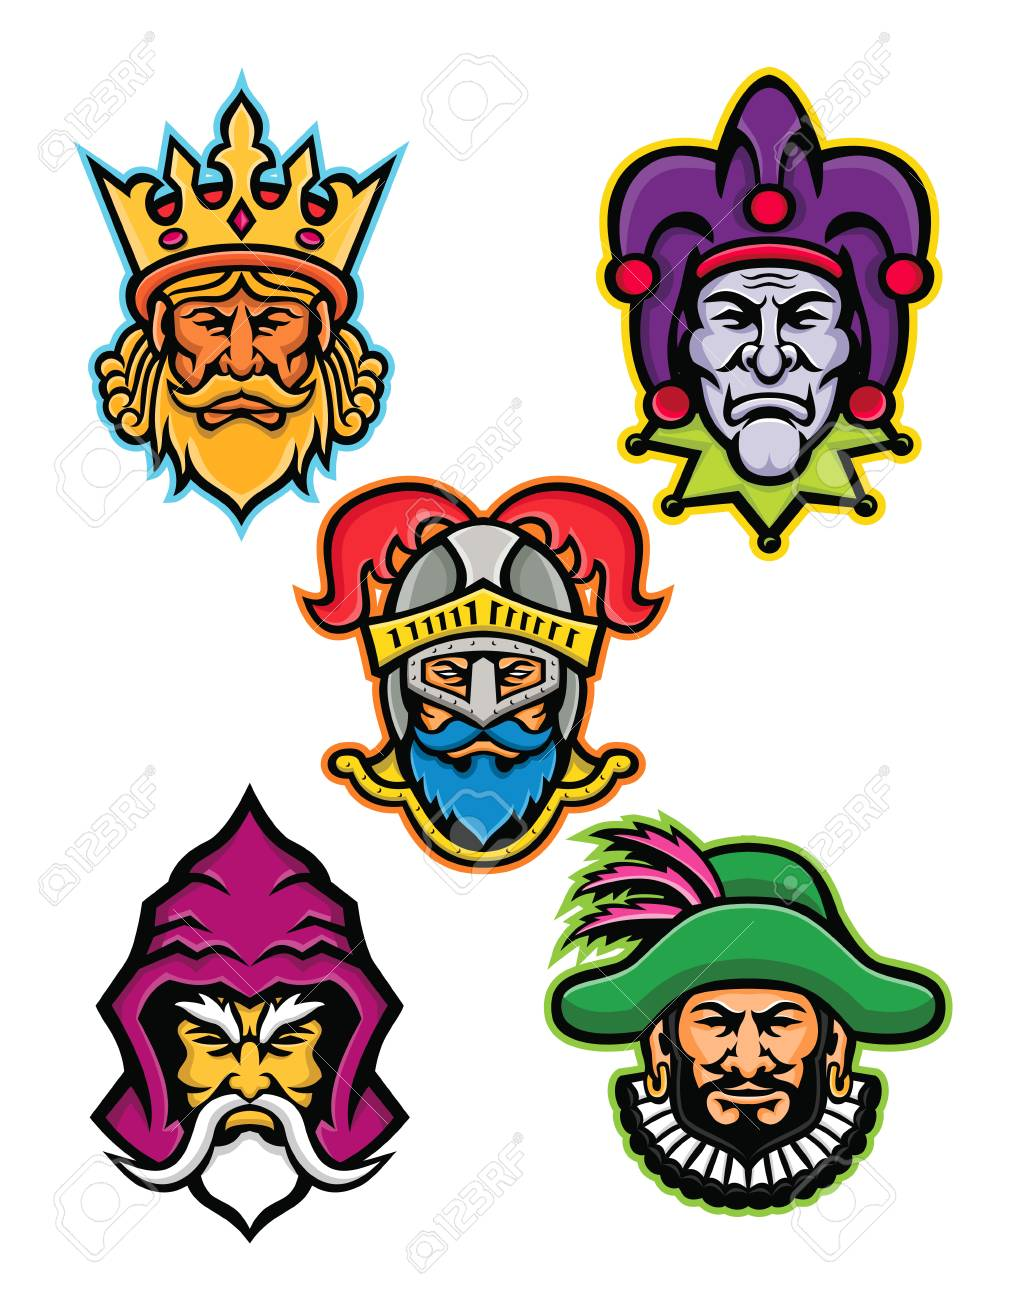 ab44d6e5d7 Mascot icon illustration set of heads of the European medieval royal court  figures like the king or monarch, court jester or fool, knight, ...